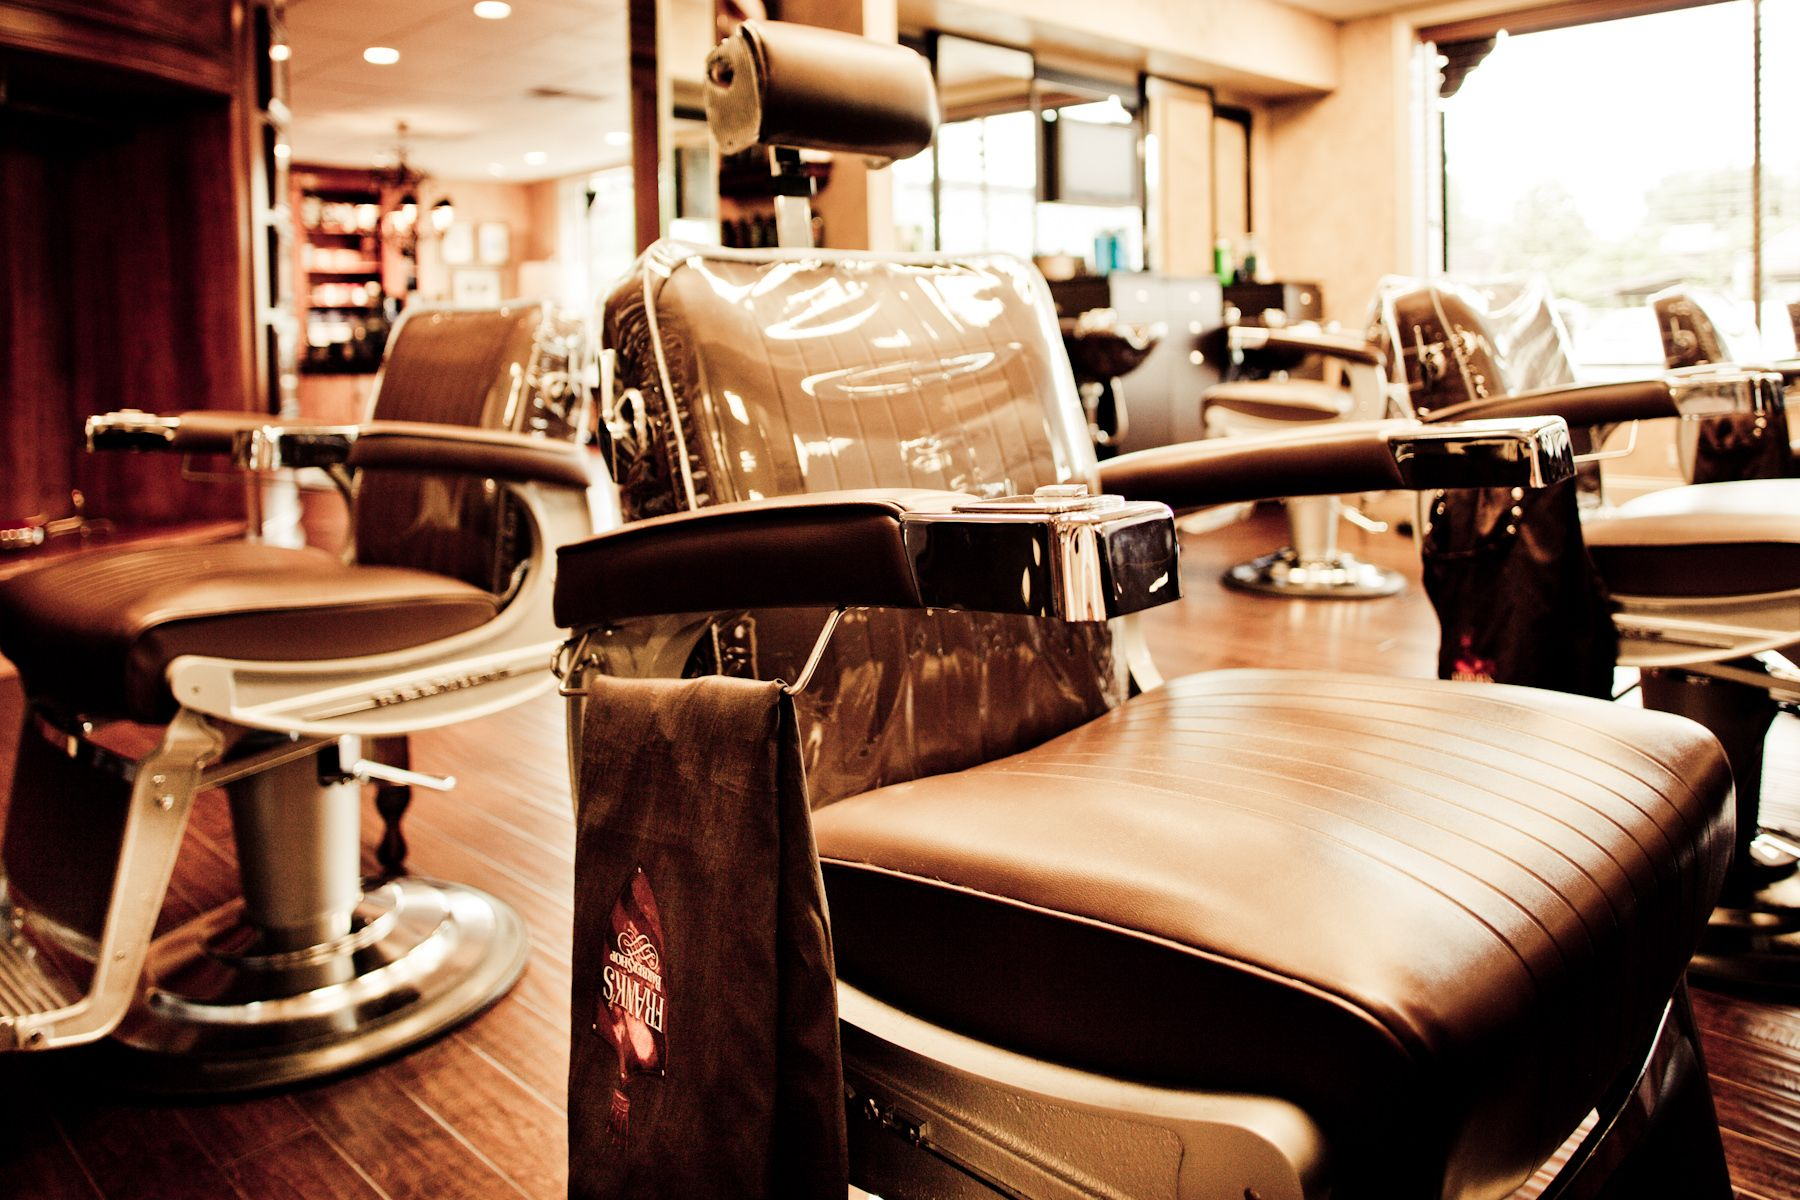 Frank 39 s barber shop knoxville tn barber shop best barber shop salon design barber shop for Interior design schools in knoxville tn